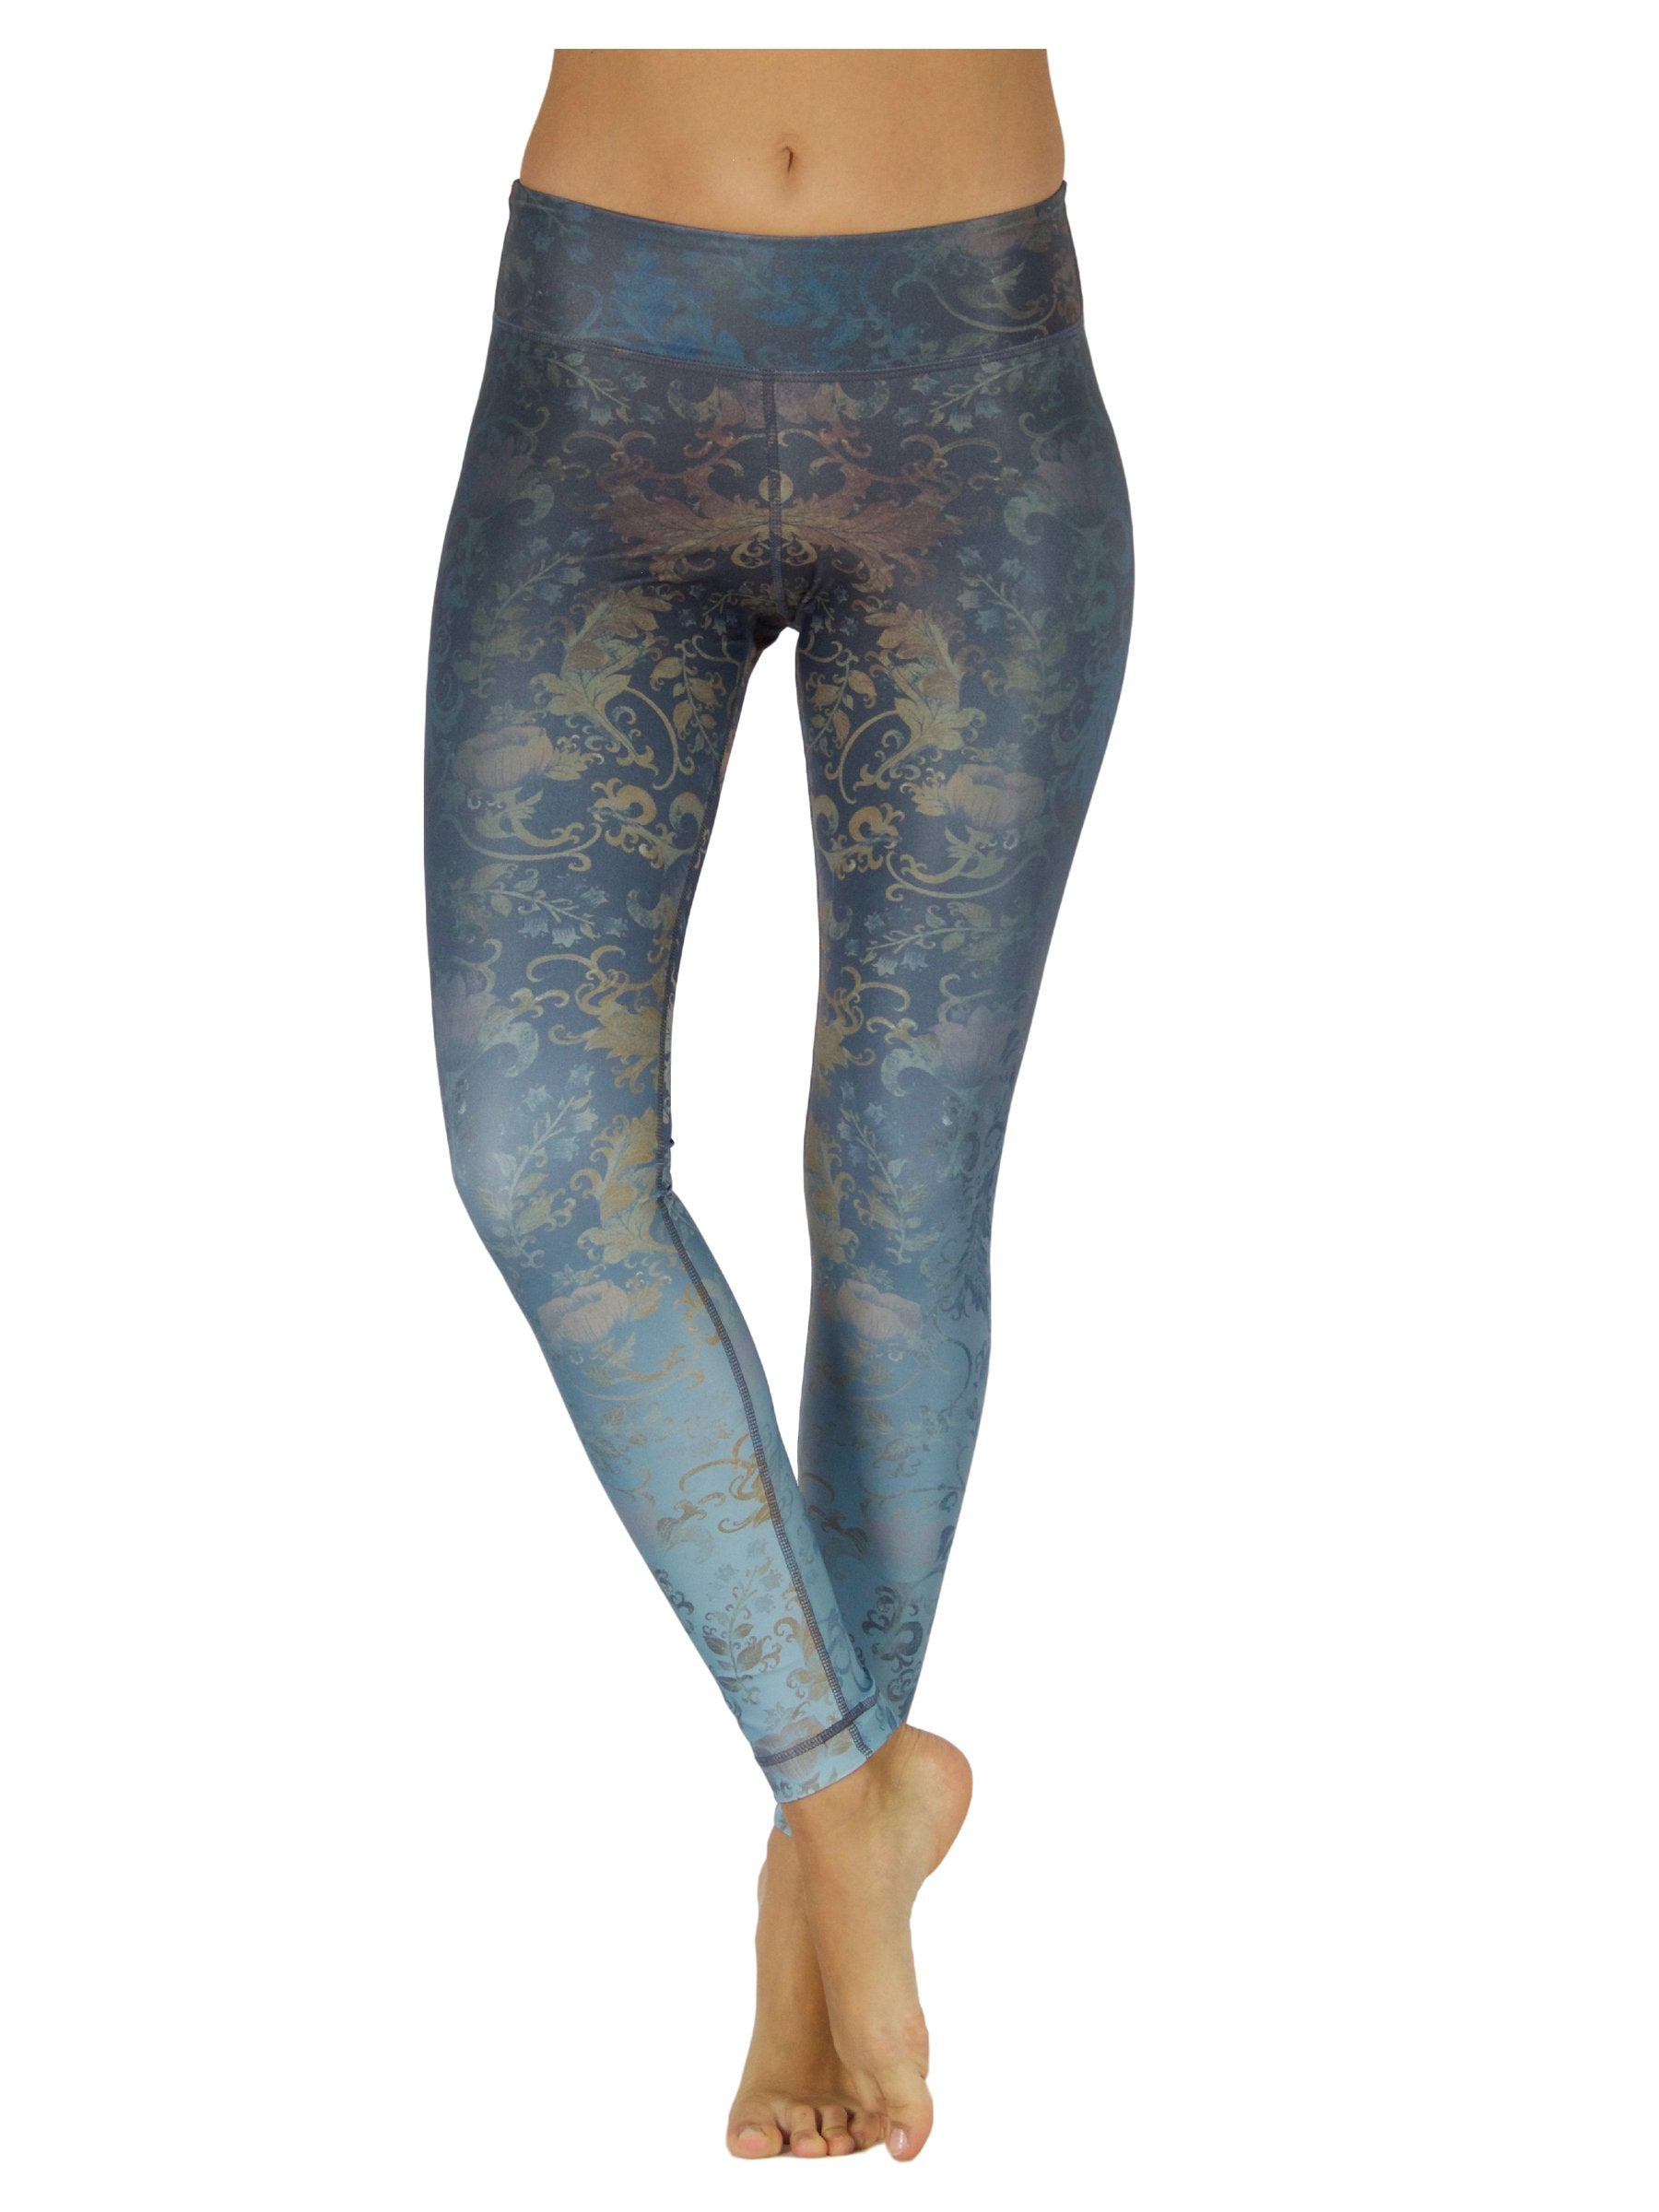 Shining Goddess by Niyama - High Quality, Yoga Legging for Movement Artists.